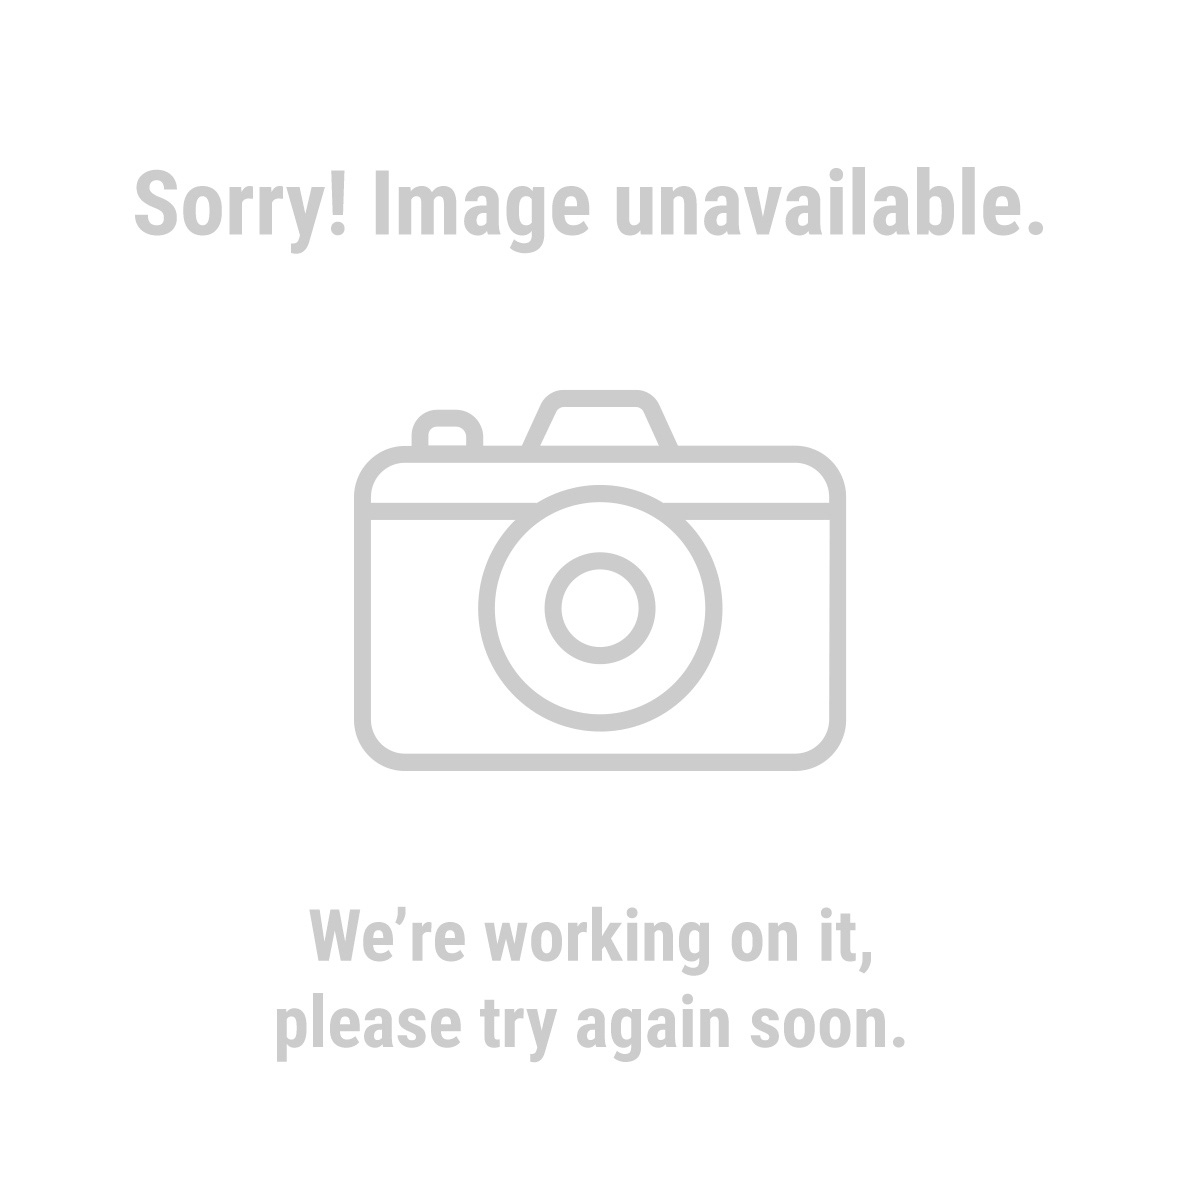 Western Safety 61438 2 Piece Respirator Masks